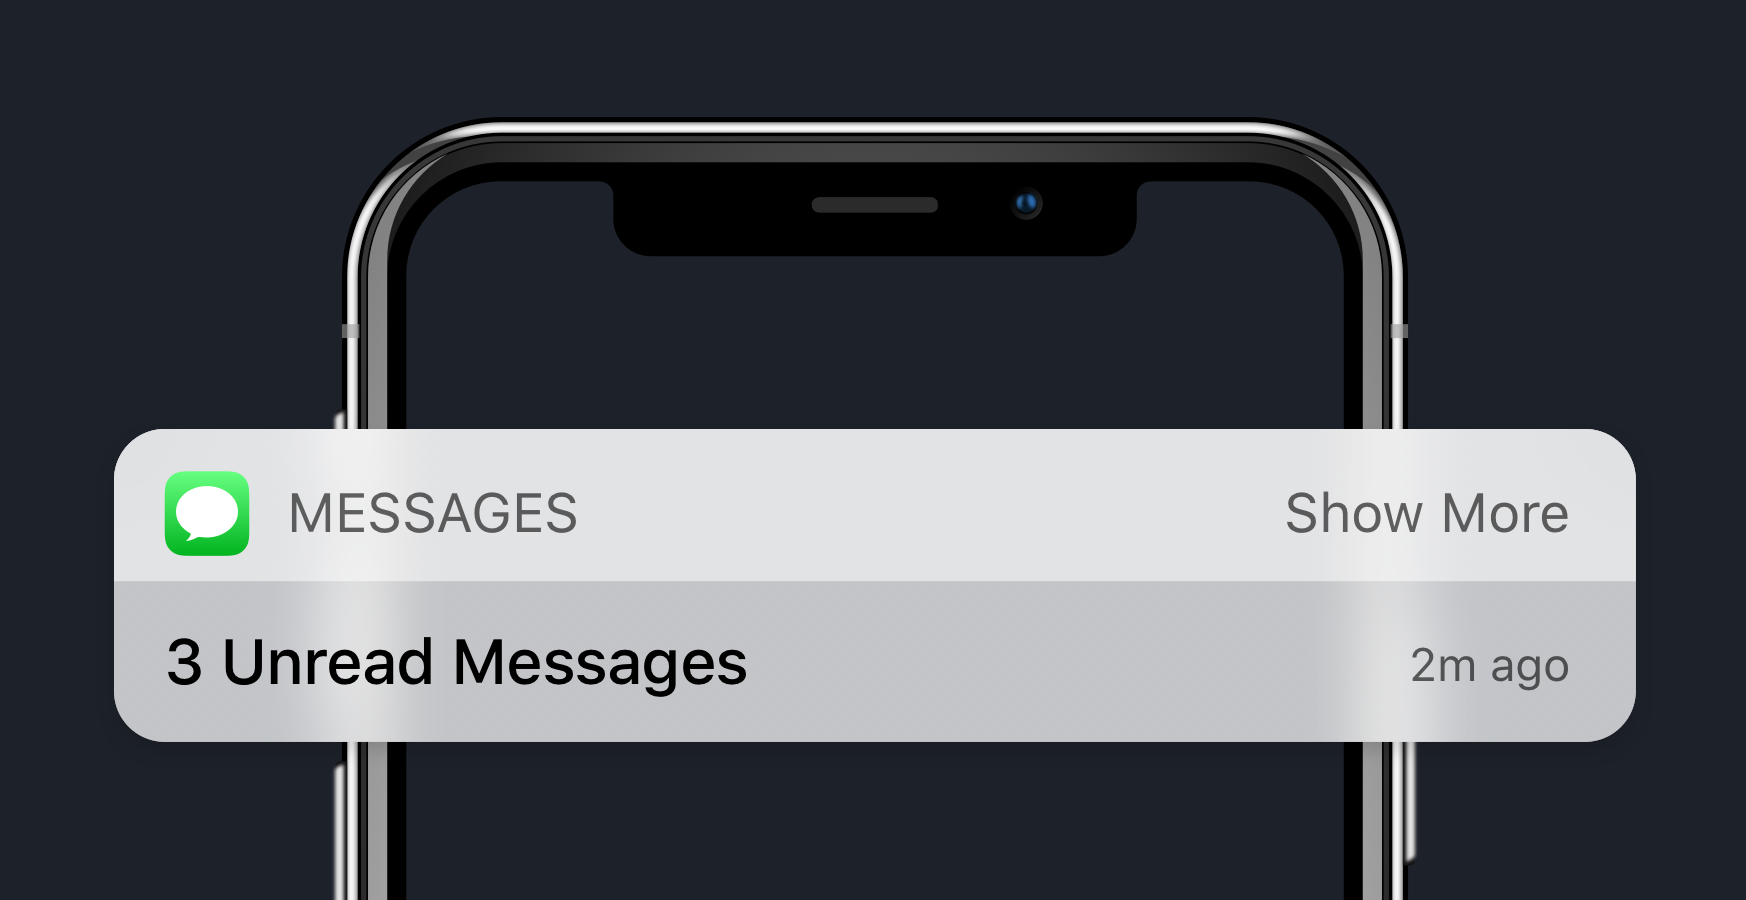 Designing a better notification experience for iOS - UX